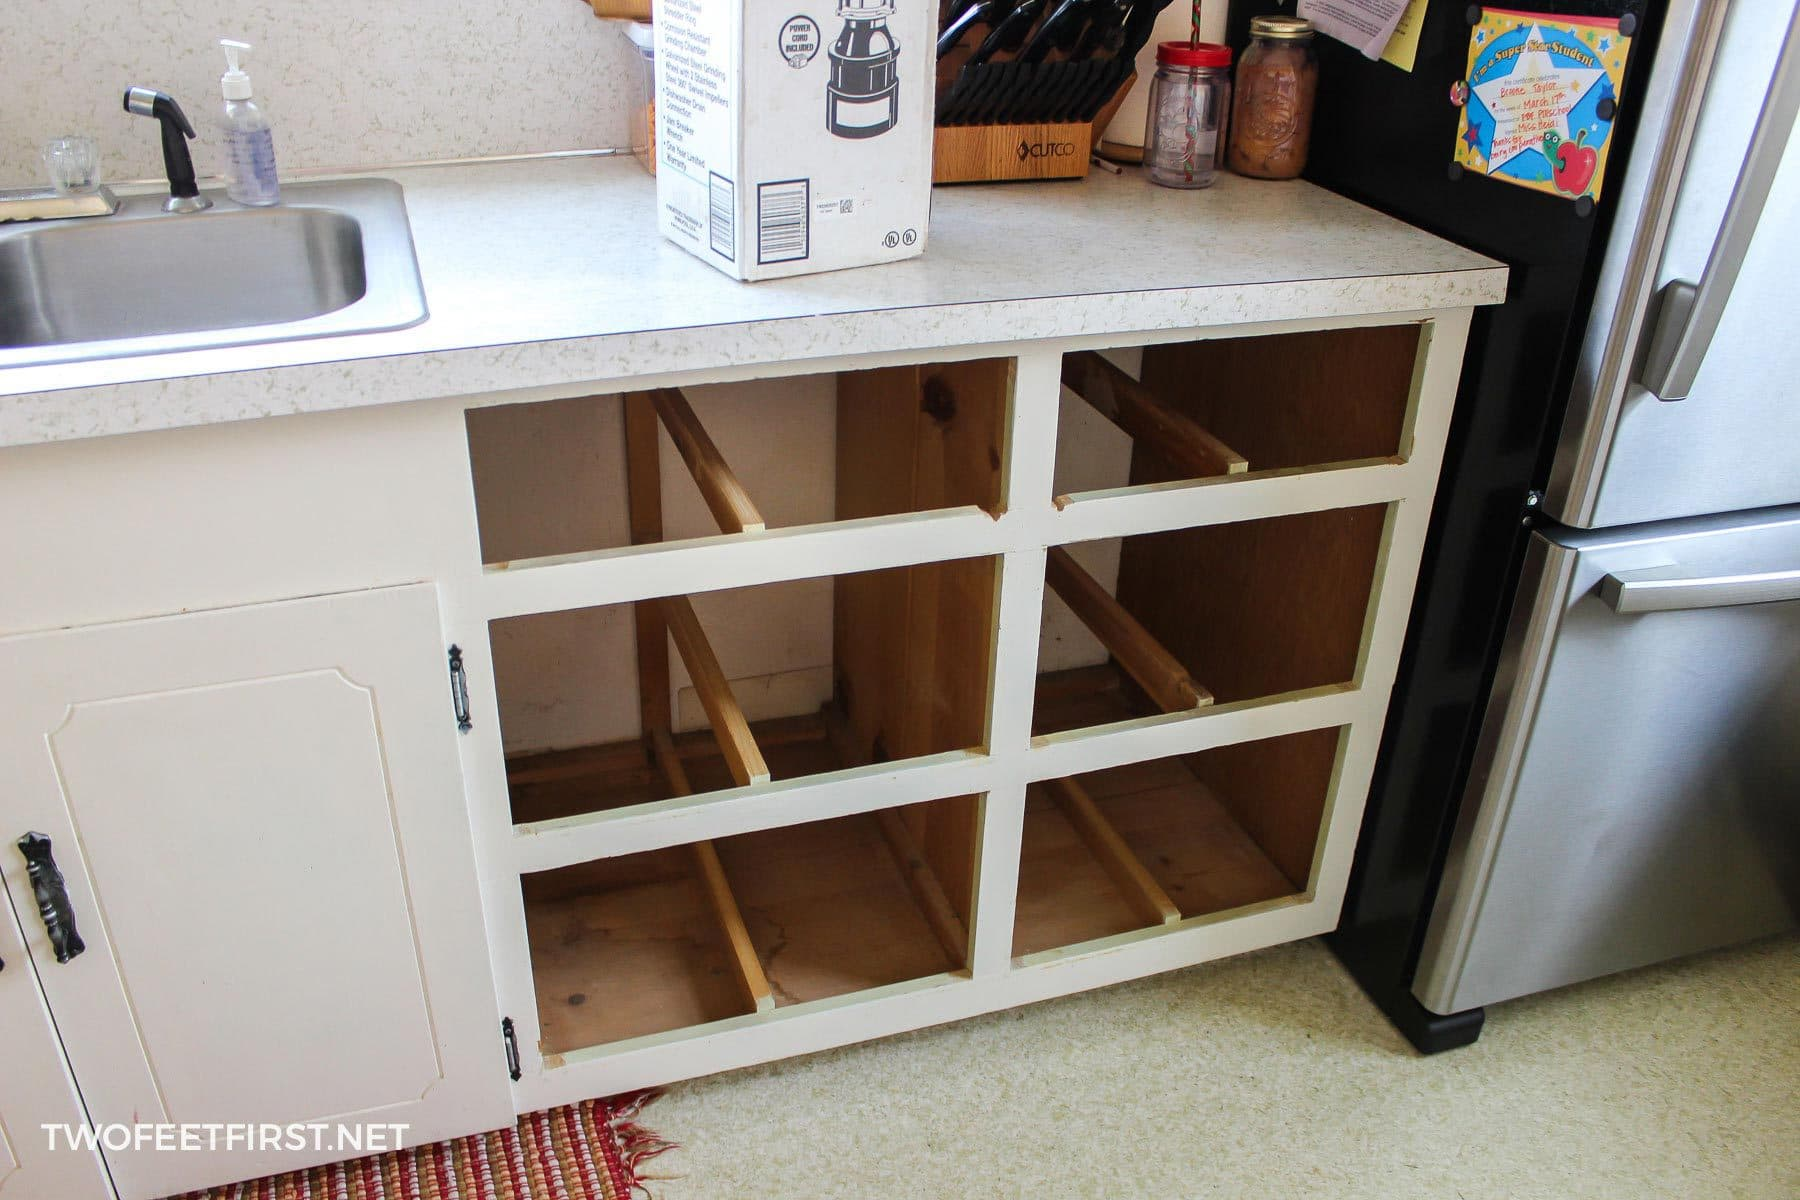 Adding A Dishwasher To Existing Cabinets - TwoFeetFirst